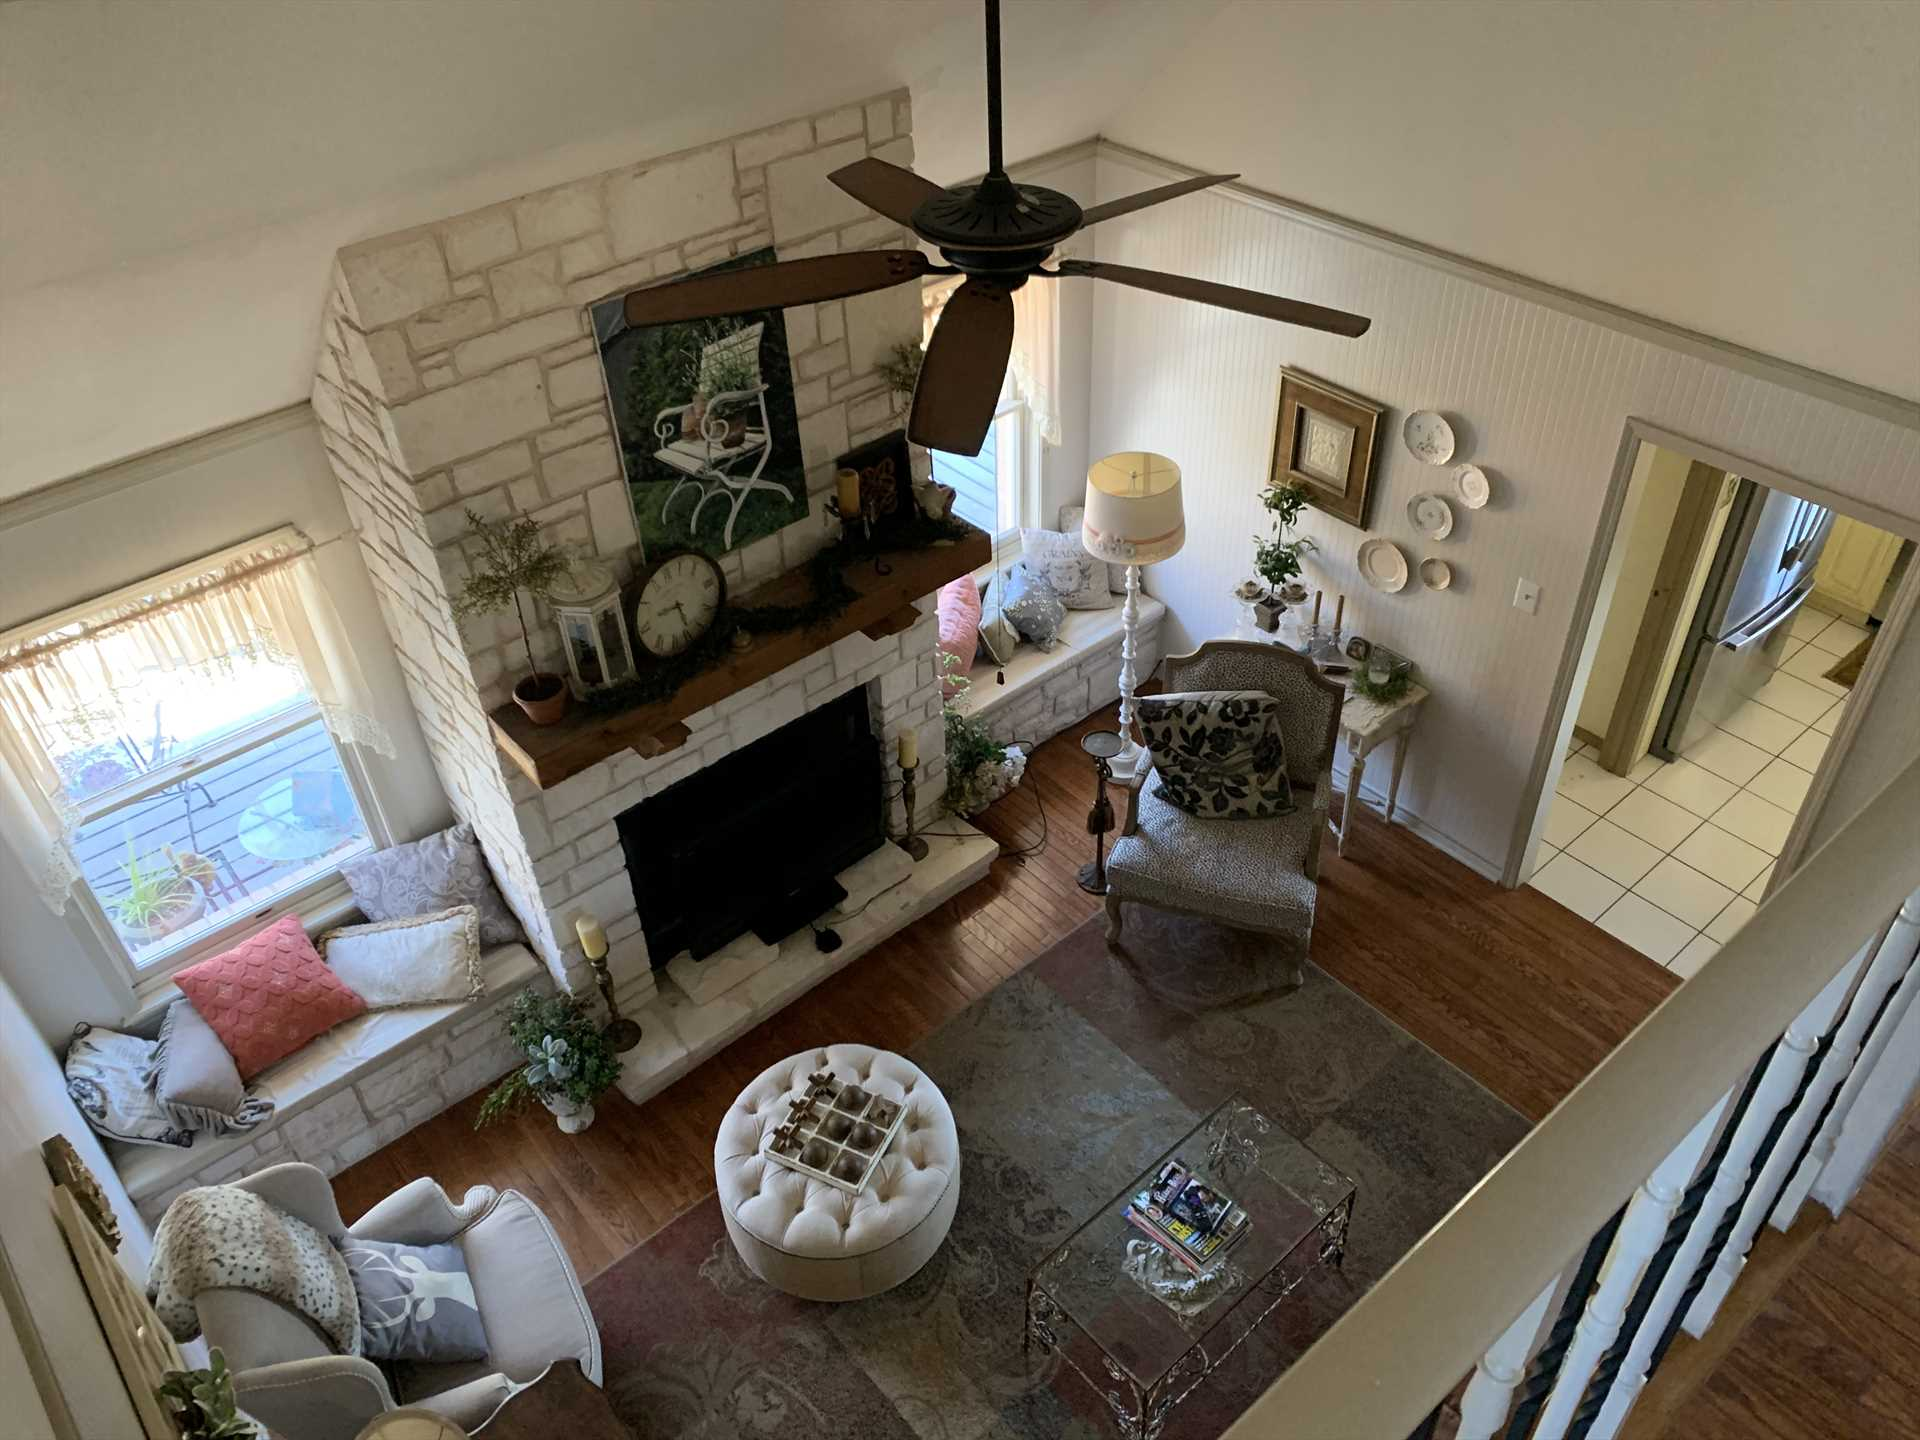 A fireplace adds warmth and style to the charming and fun living area!